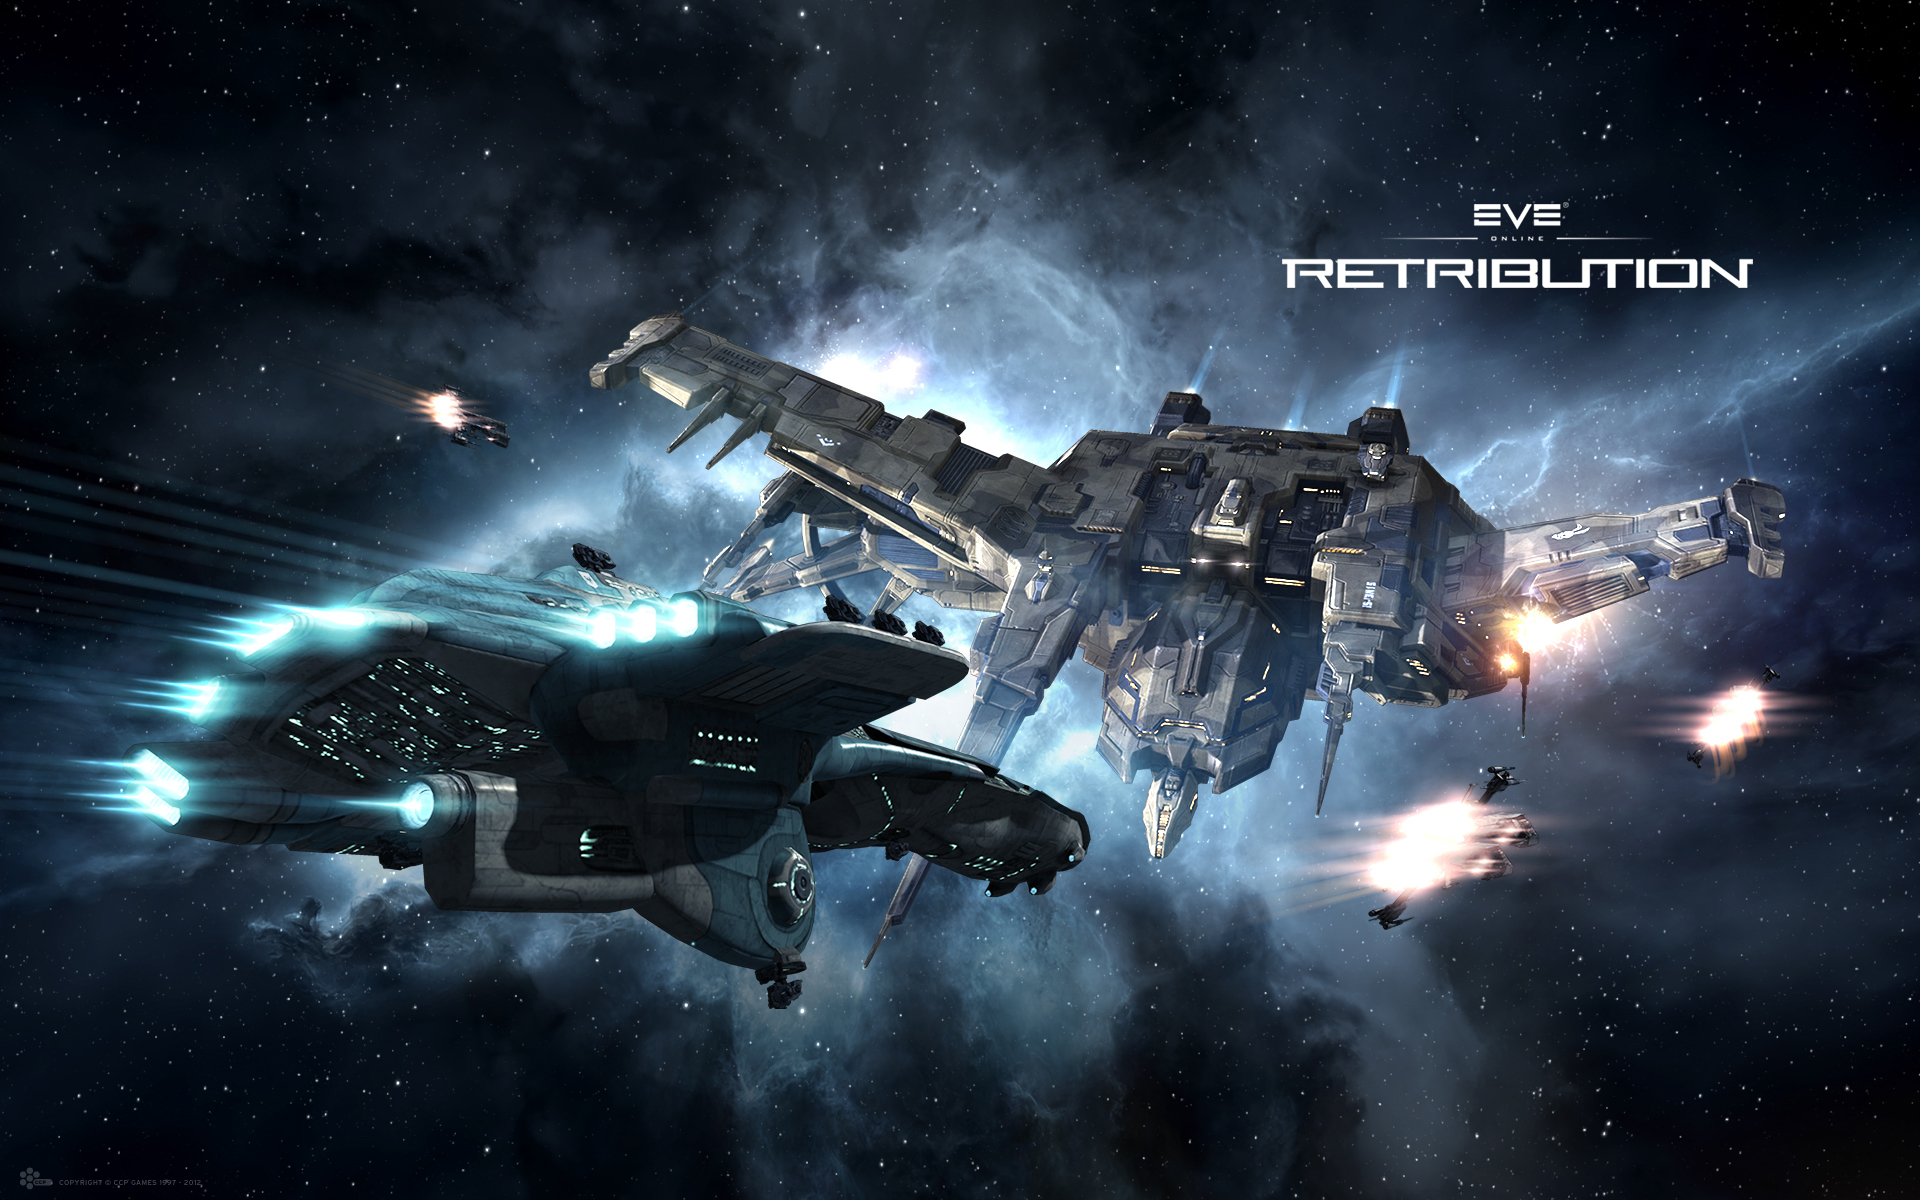 Retribution   Kopfgeldjagd   Wallpapers   EVE Online 1920x1200